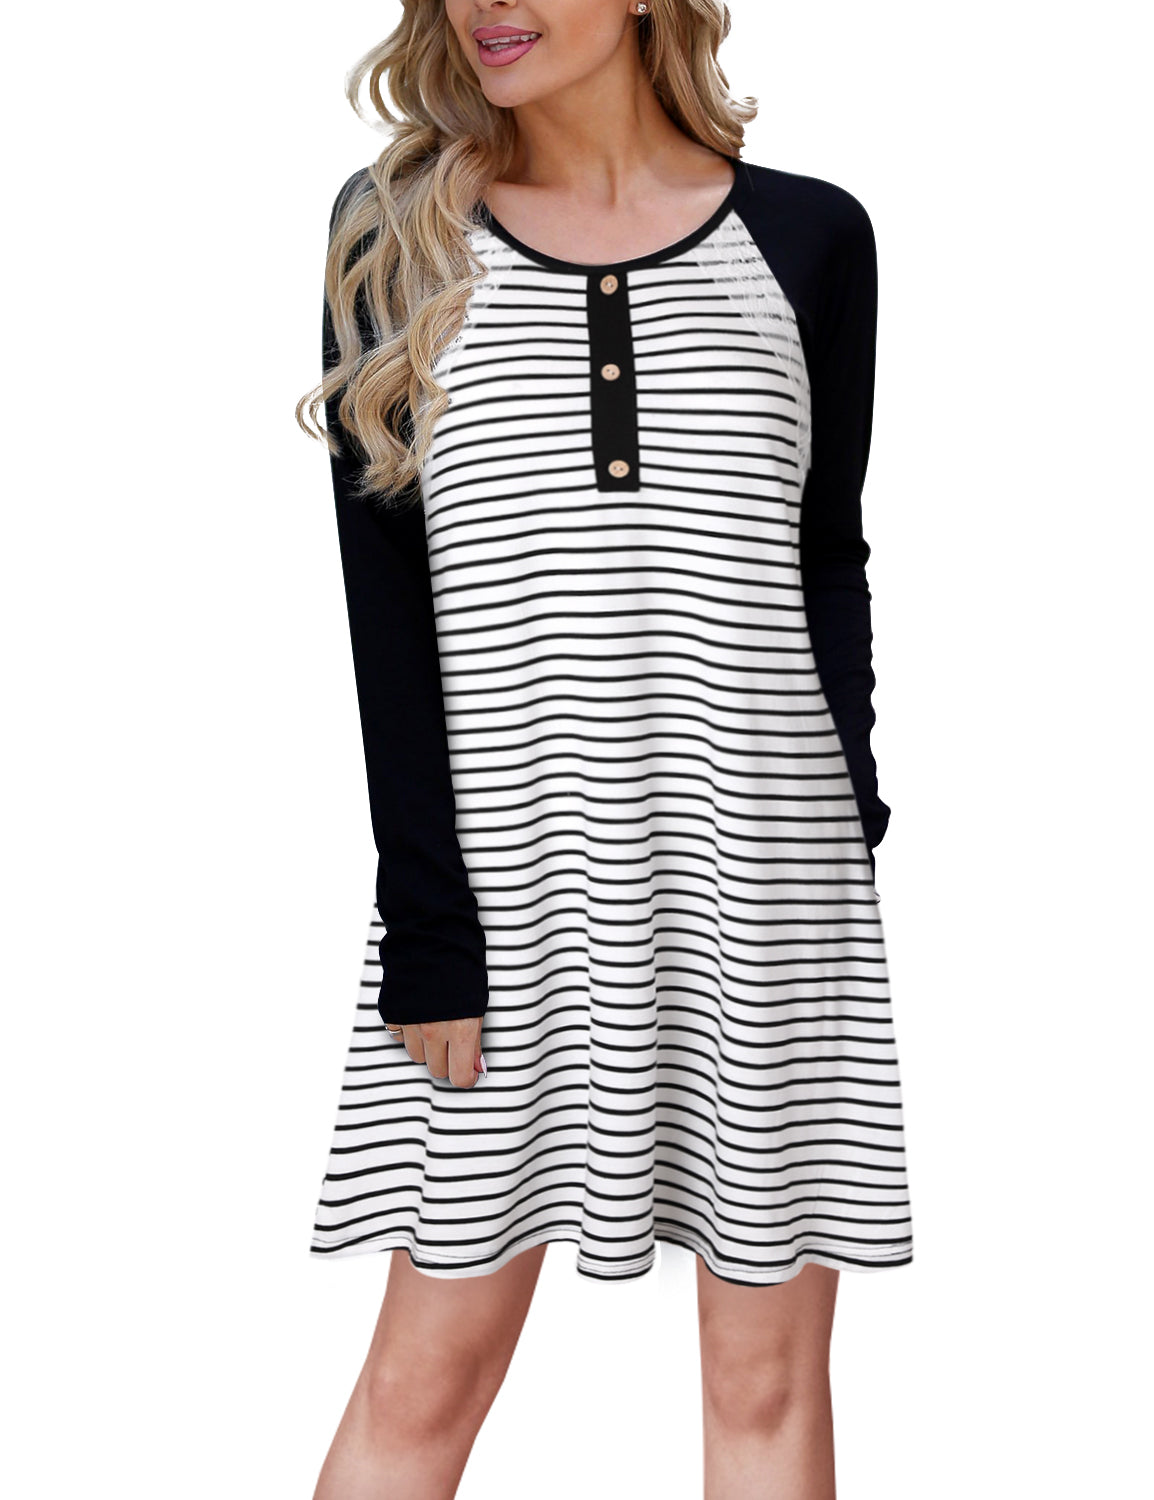 Vintage Lace Striped Contrast Swing Dress